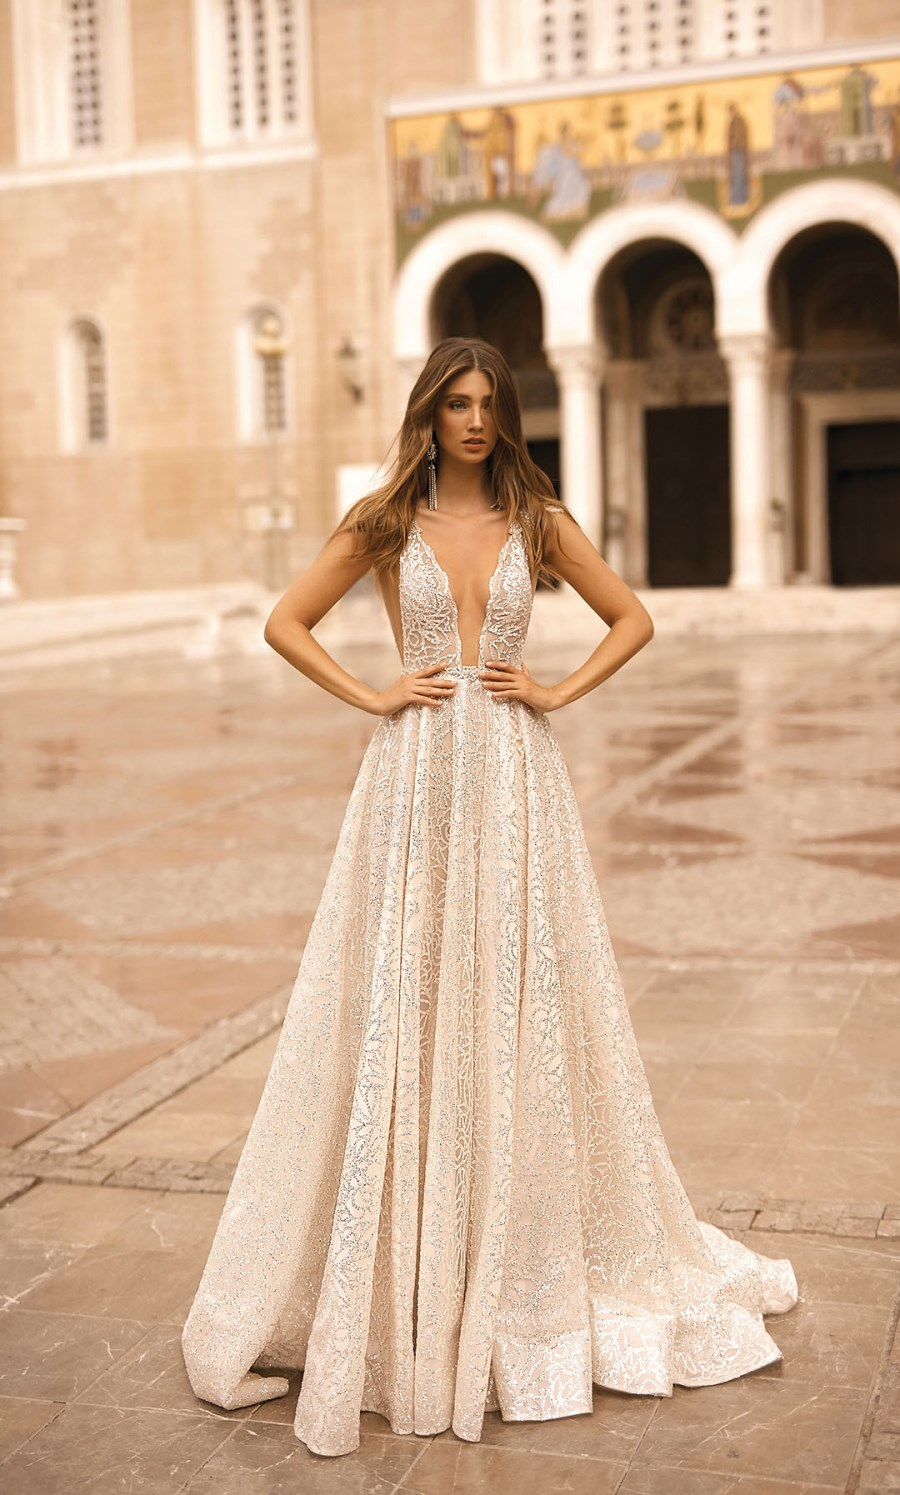 berta-wedding-dress-2019-1 (13)_2